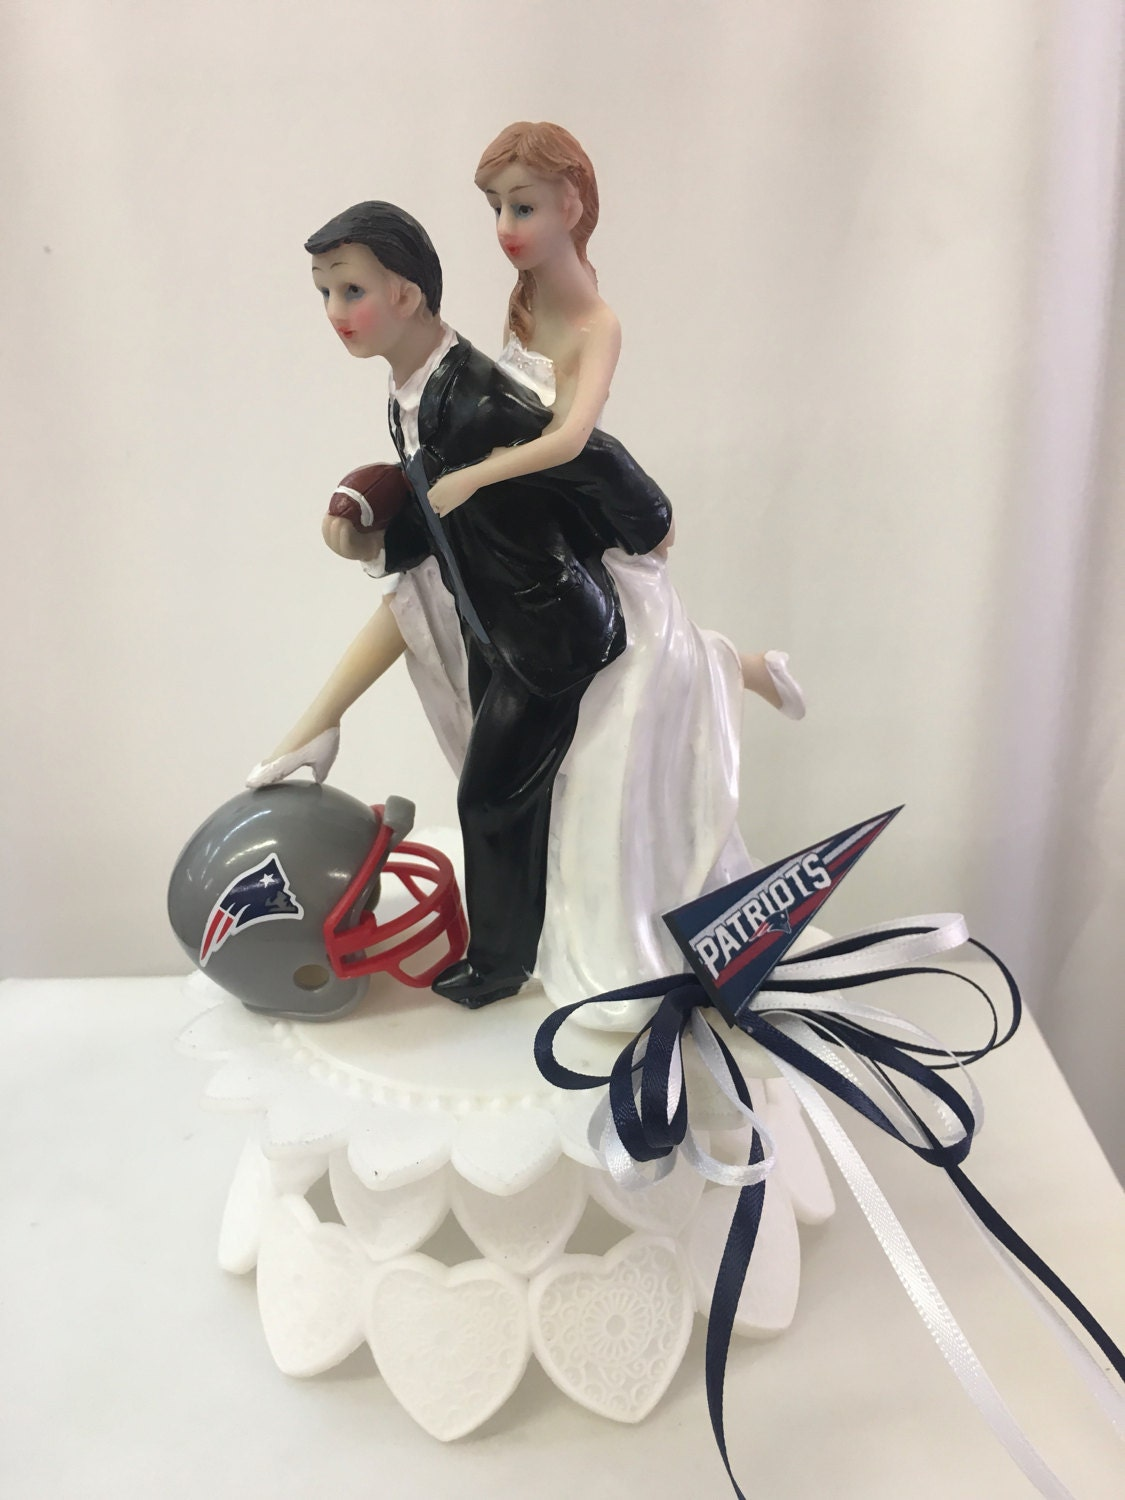 Patriots Inspired Wedding Cake Topper Playful Bride And